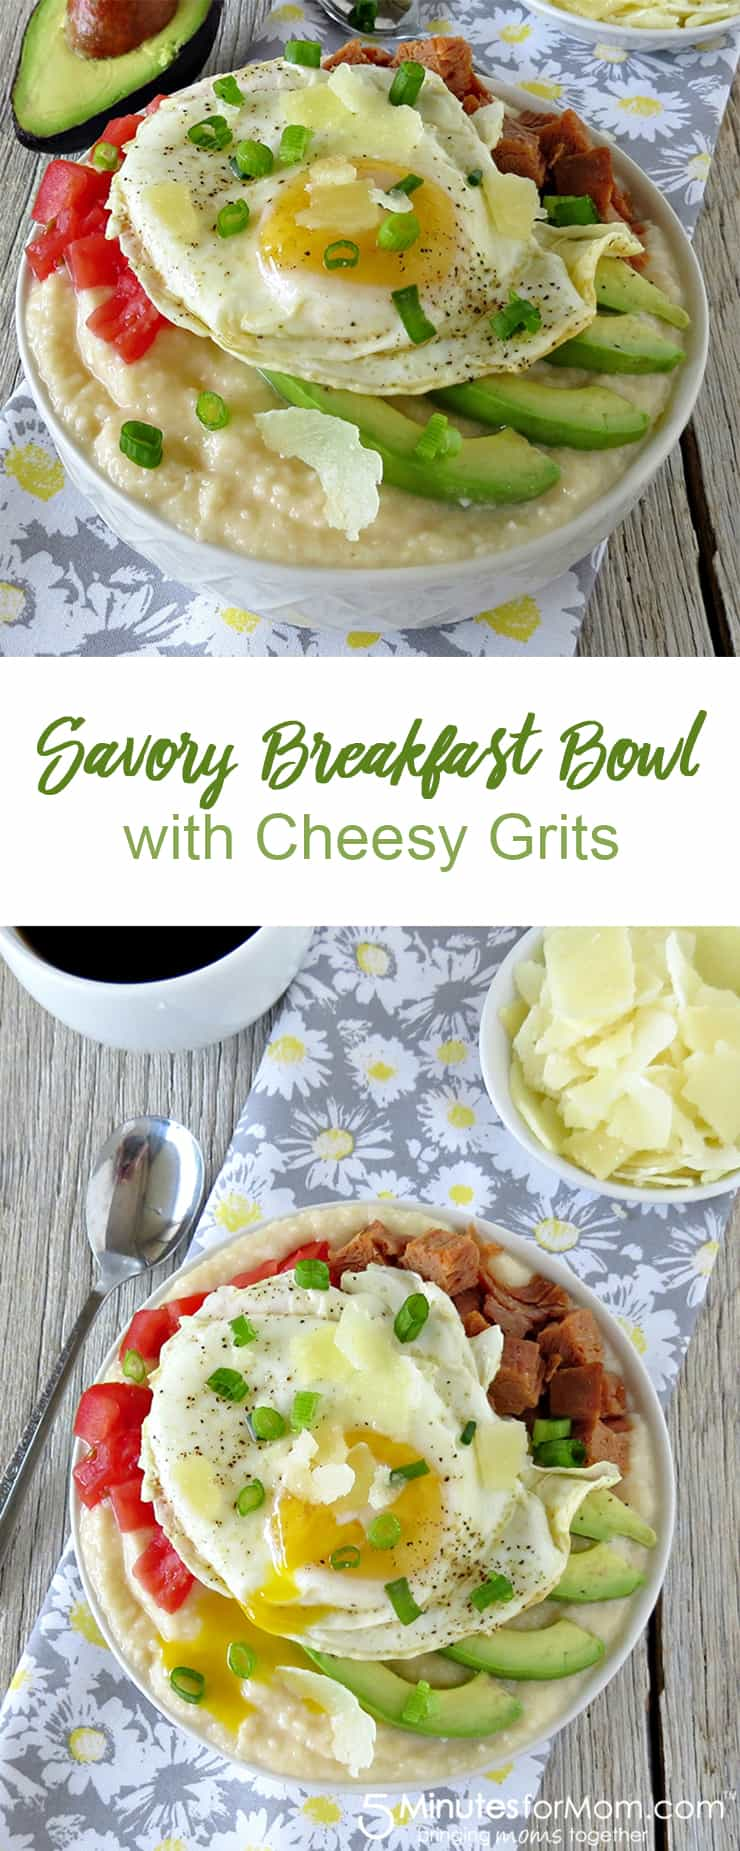 Savory Breakfast Bowl with Cheesy Grits